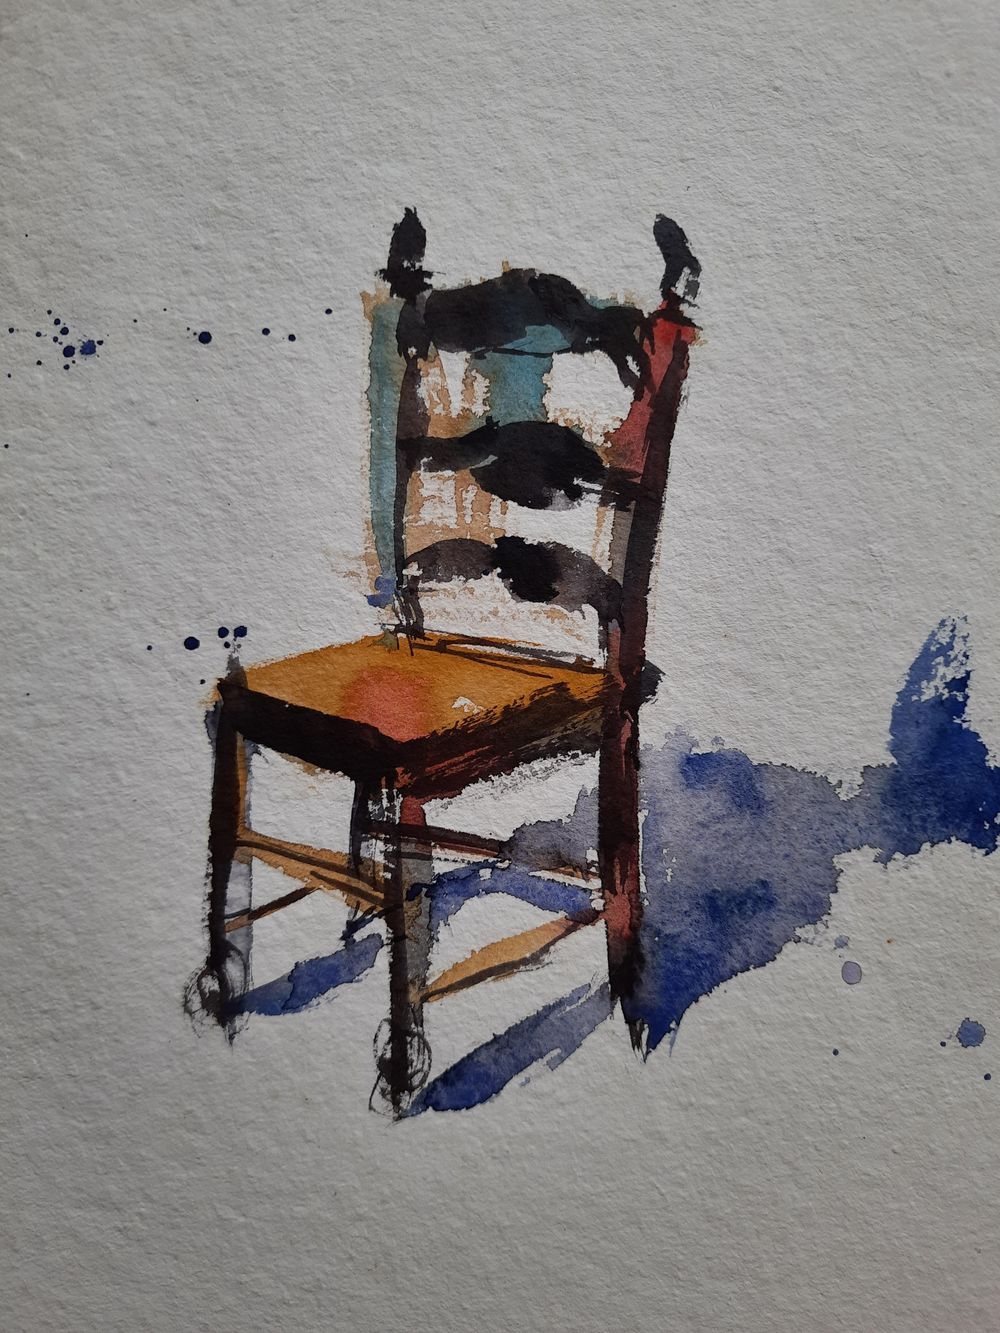 Watercolor workout - image 15 - student project